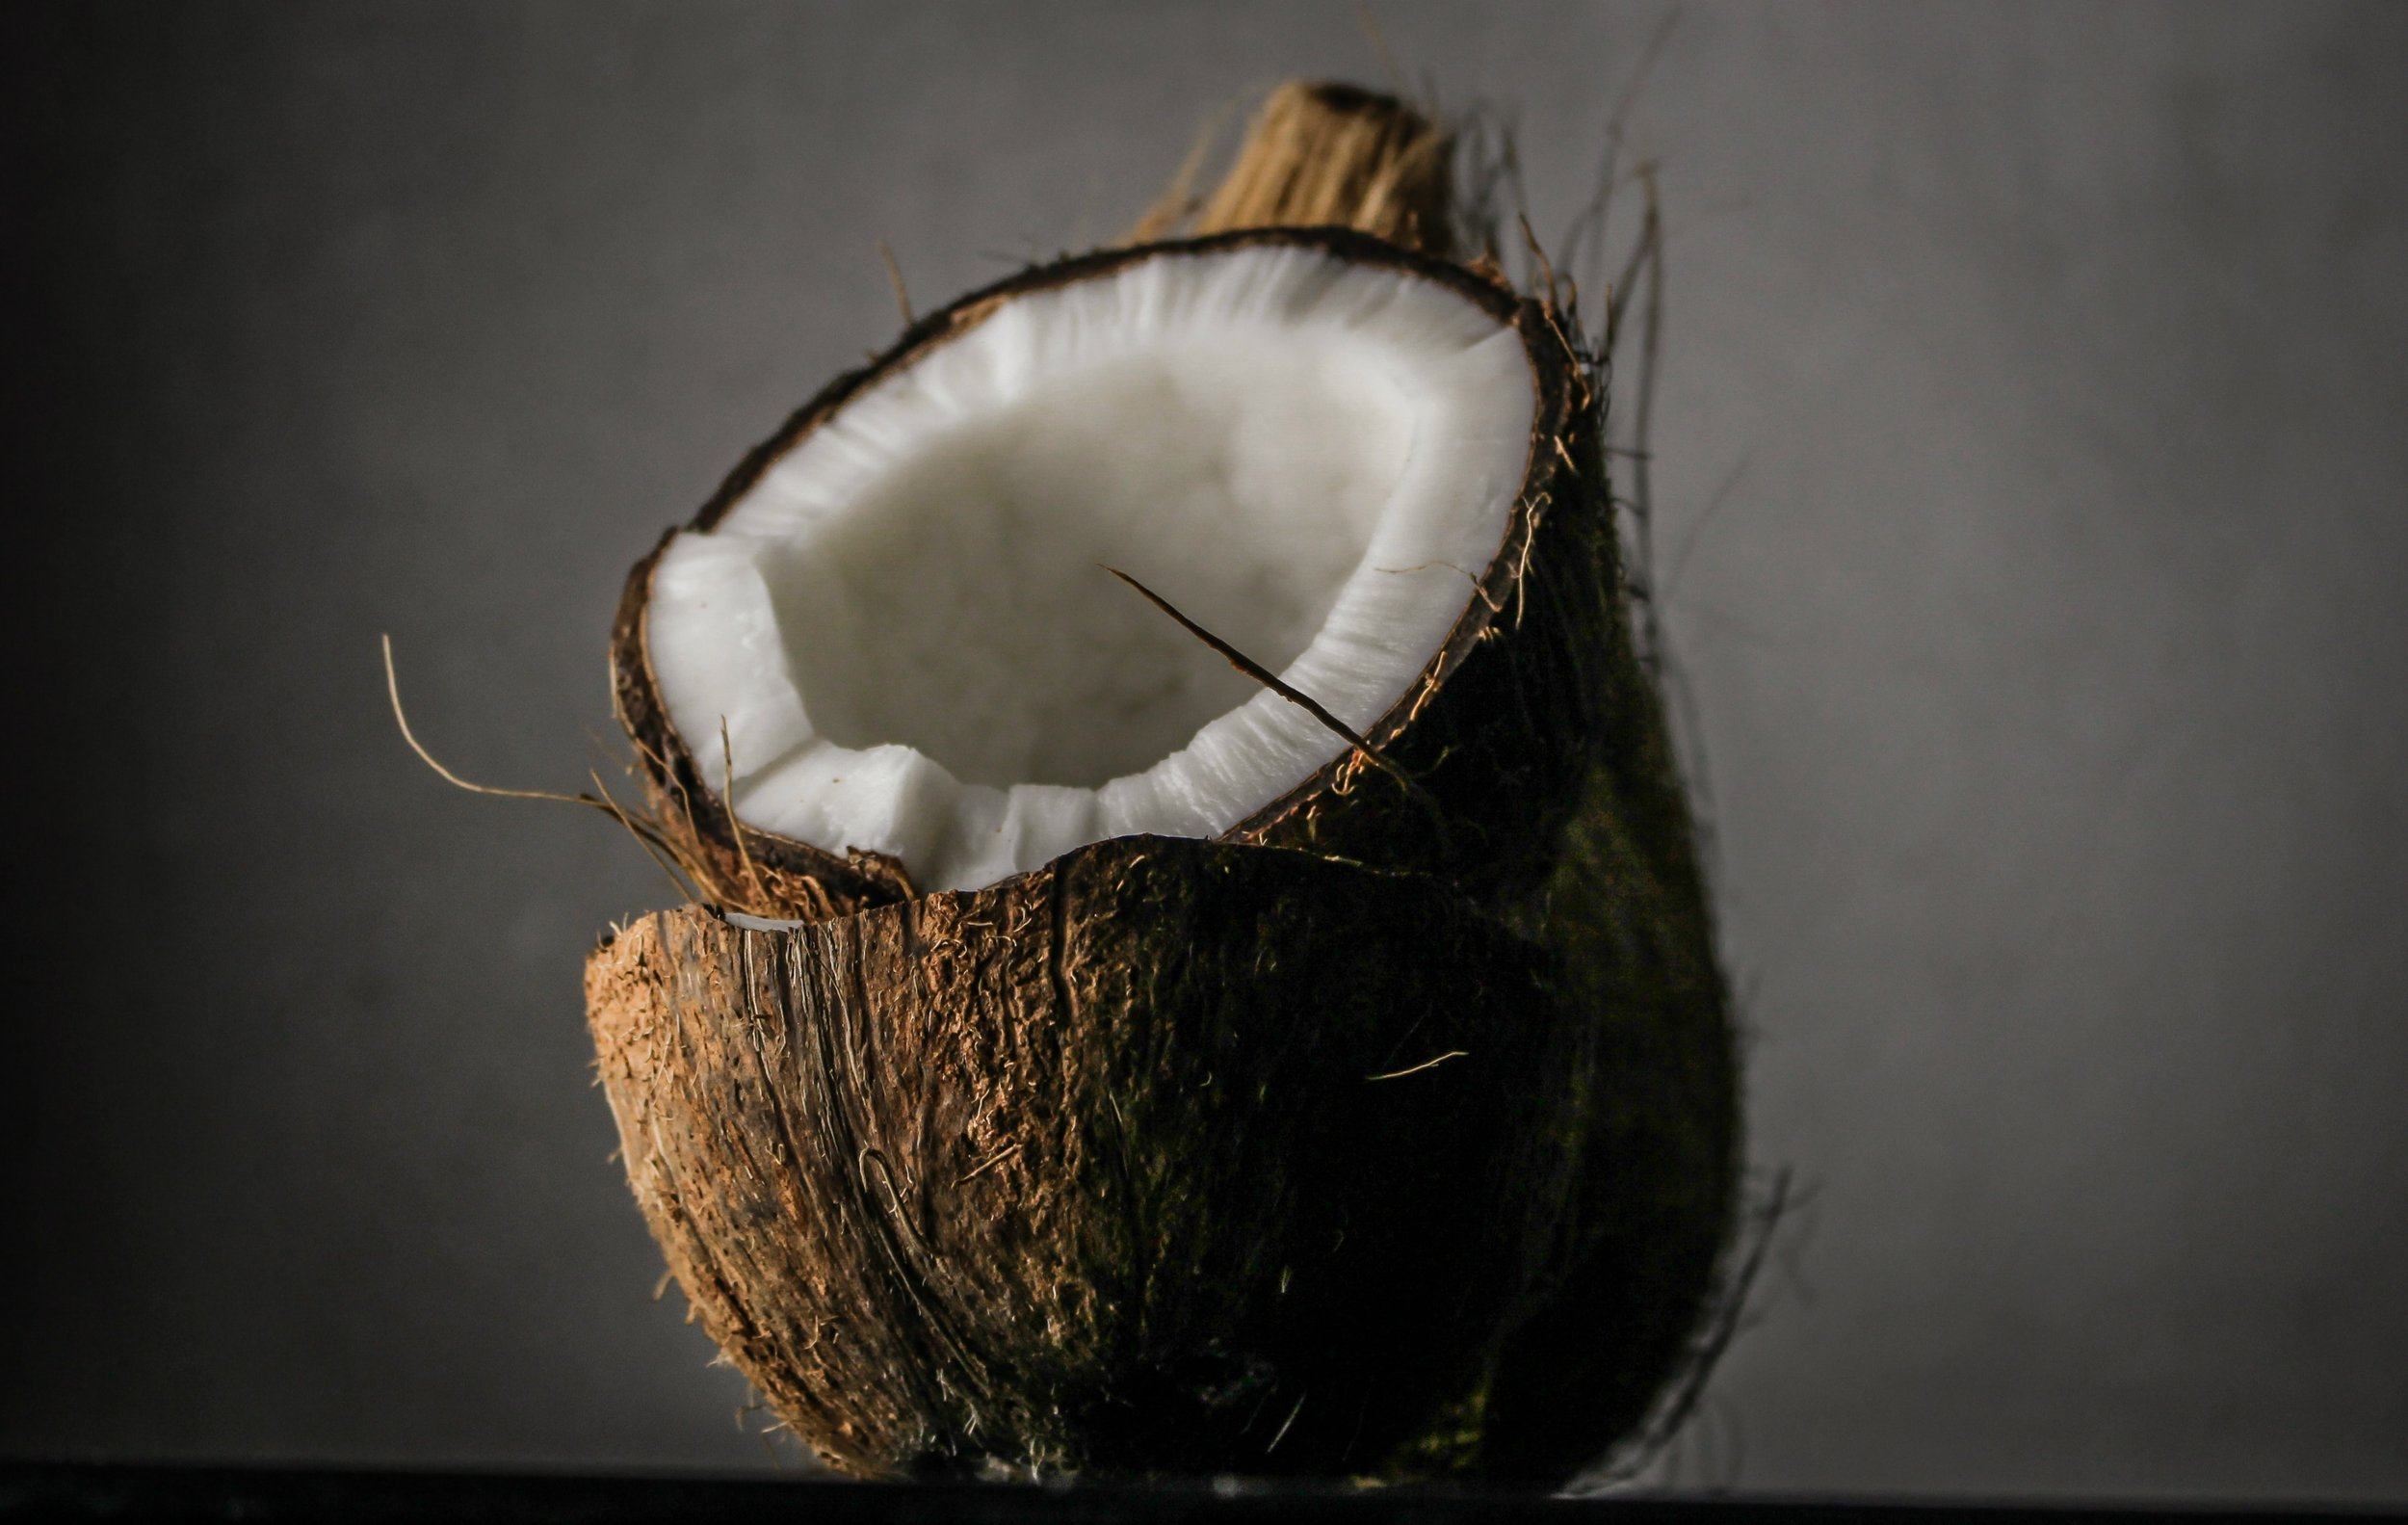 blur-close-up-coconut-1652002.jpg